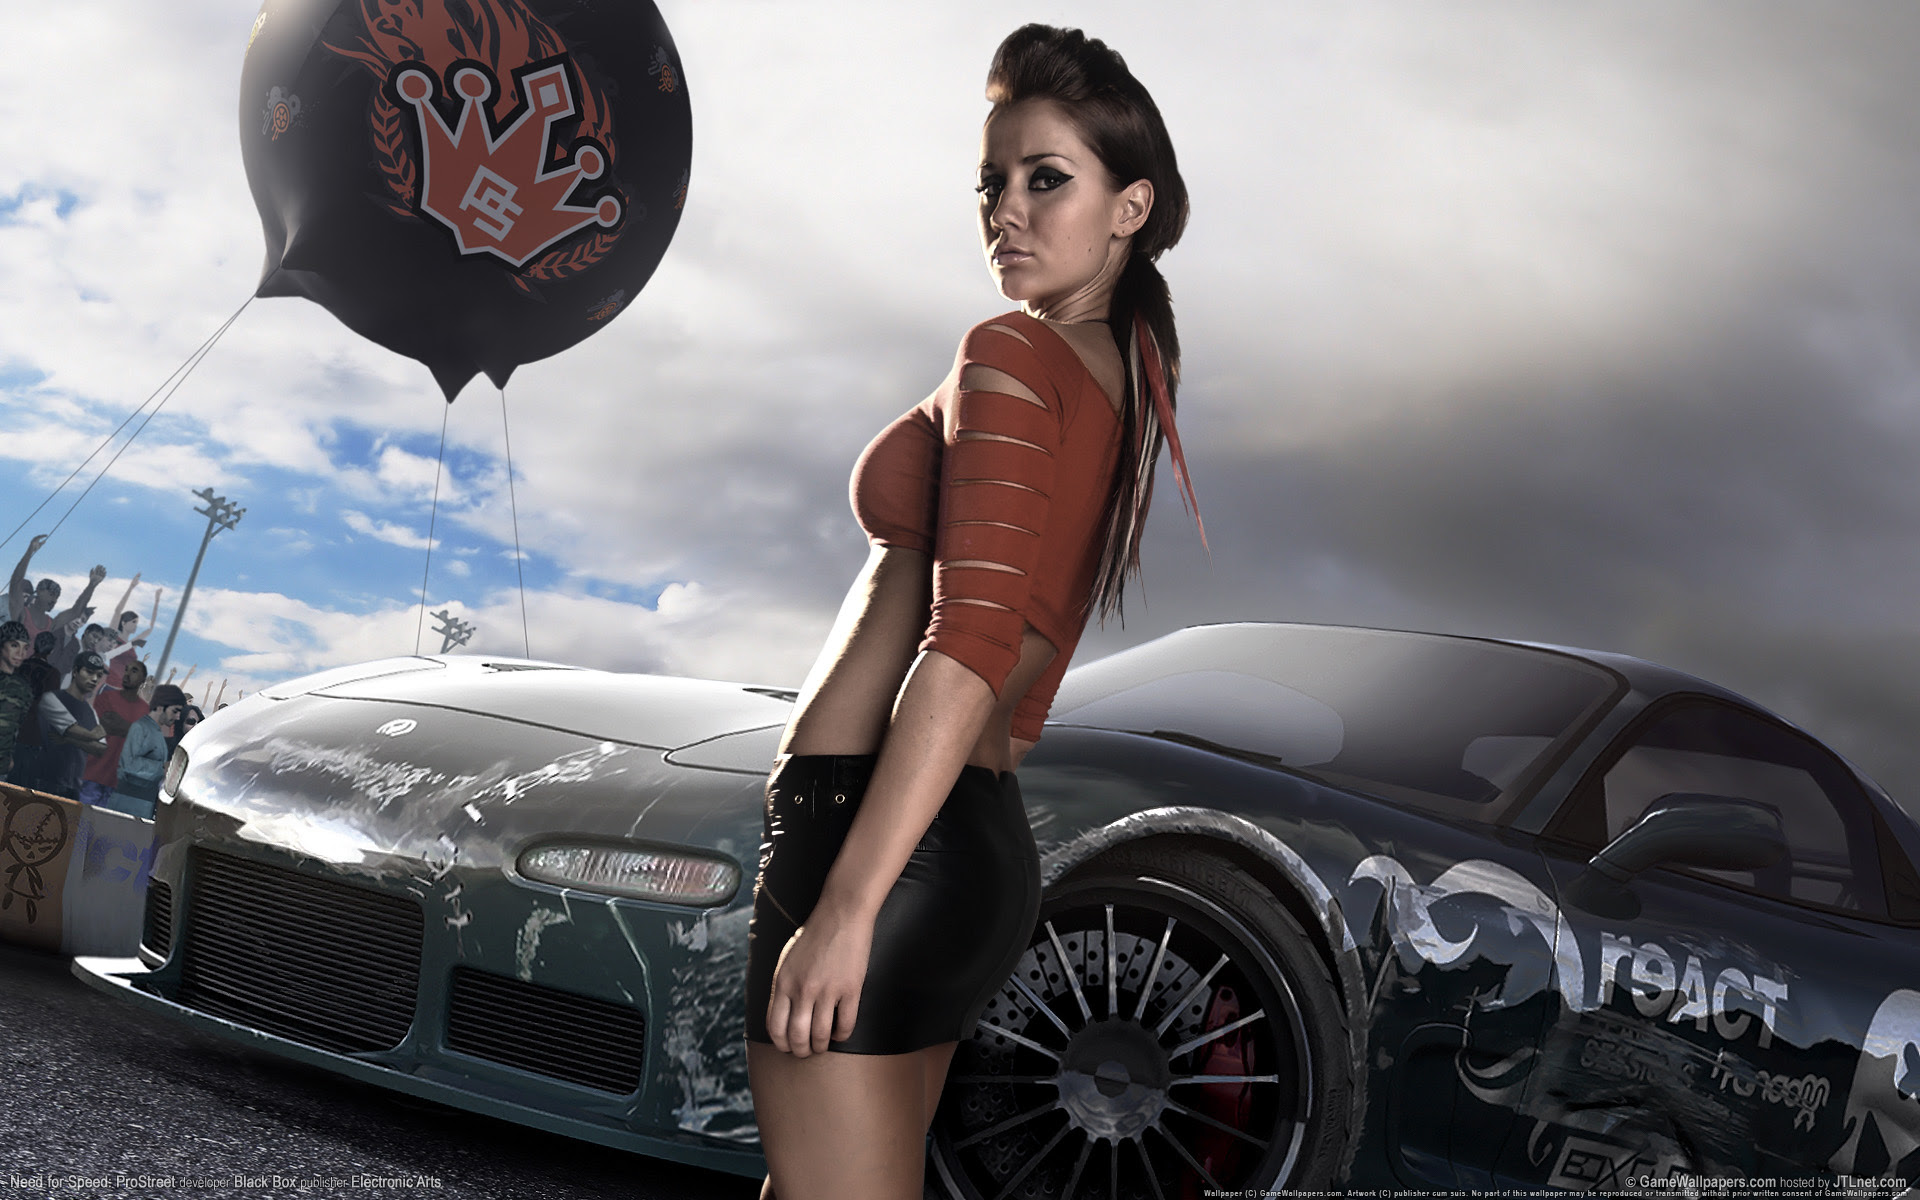 Need For Speed Prostreet Girl 2 Wallpapers Wallpapers Hd